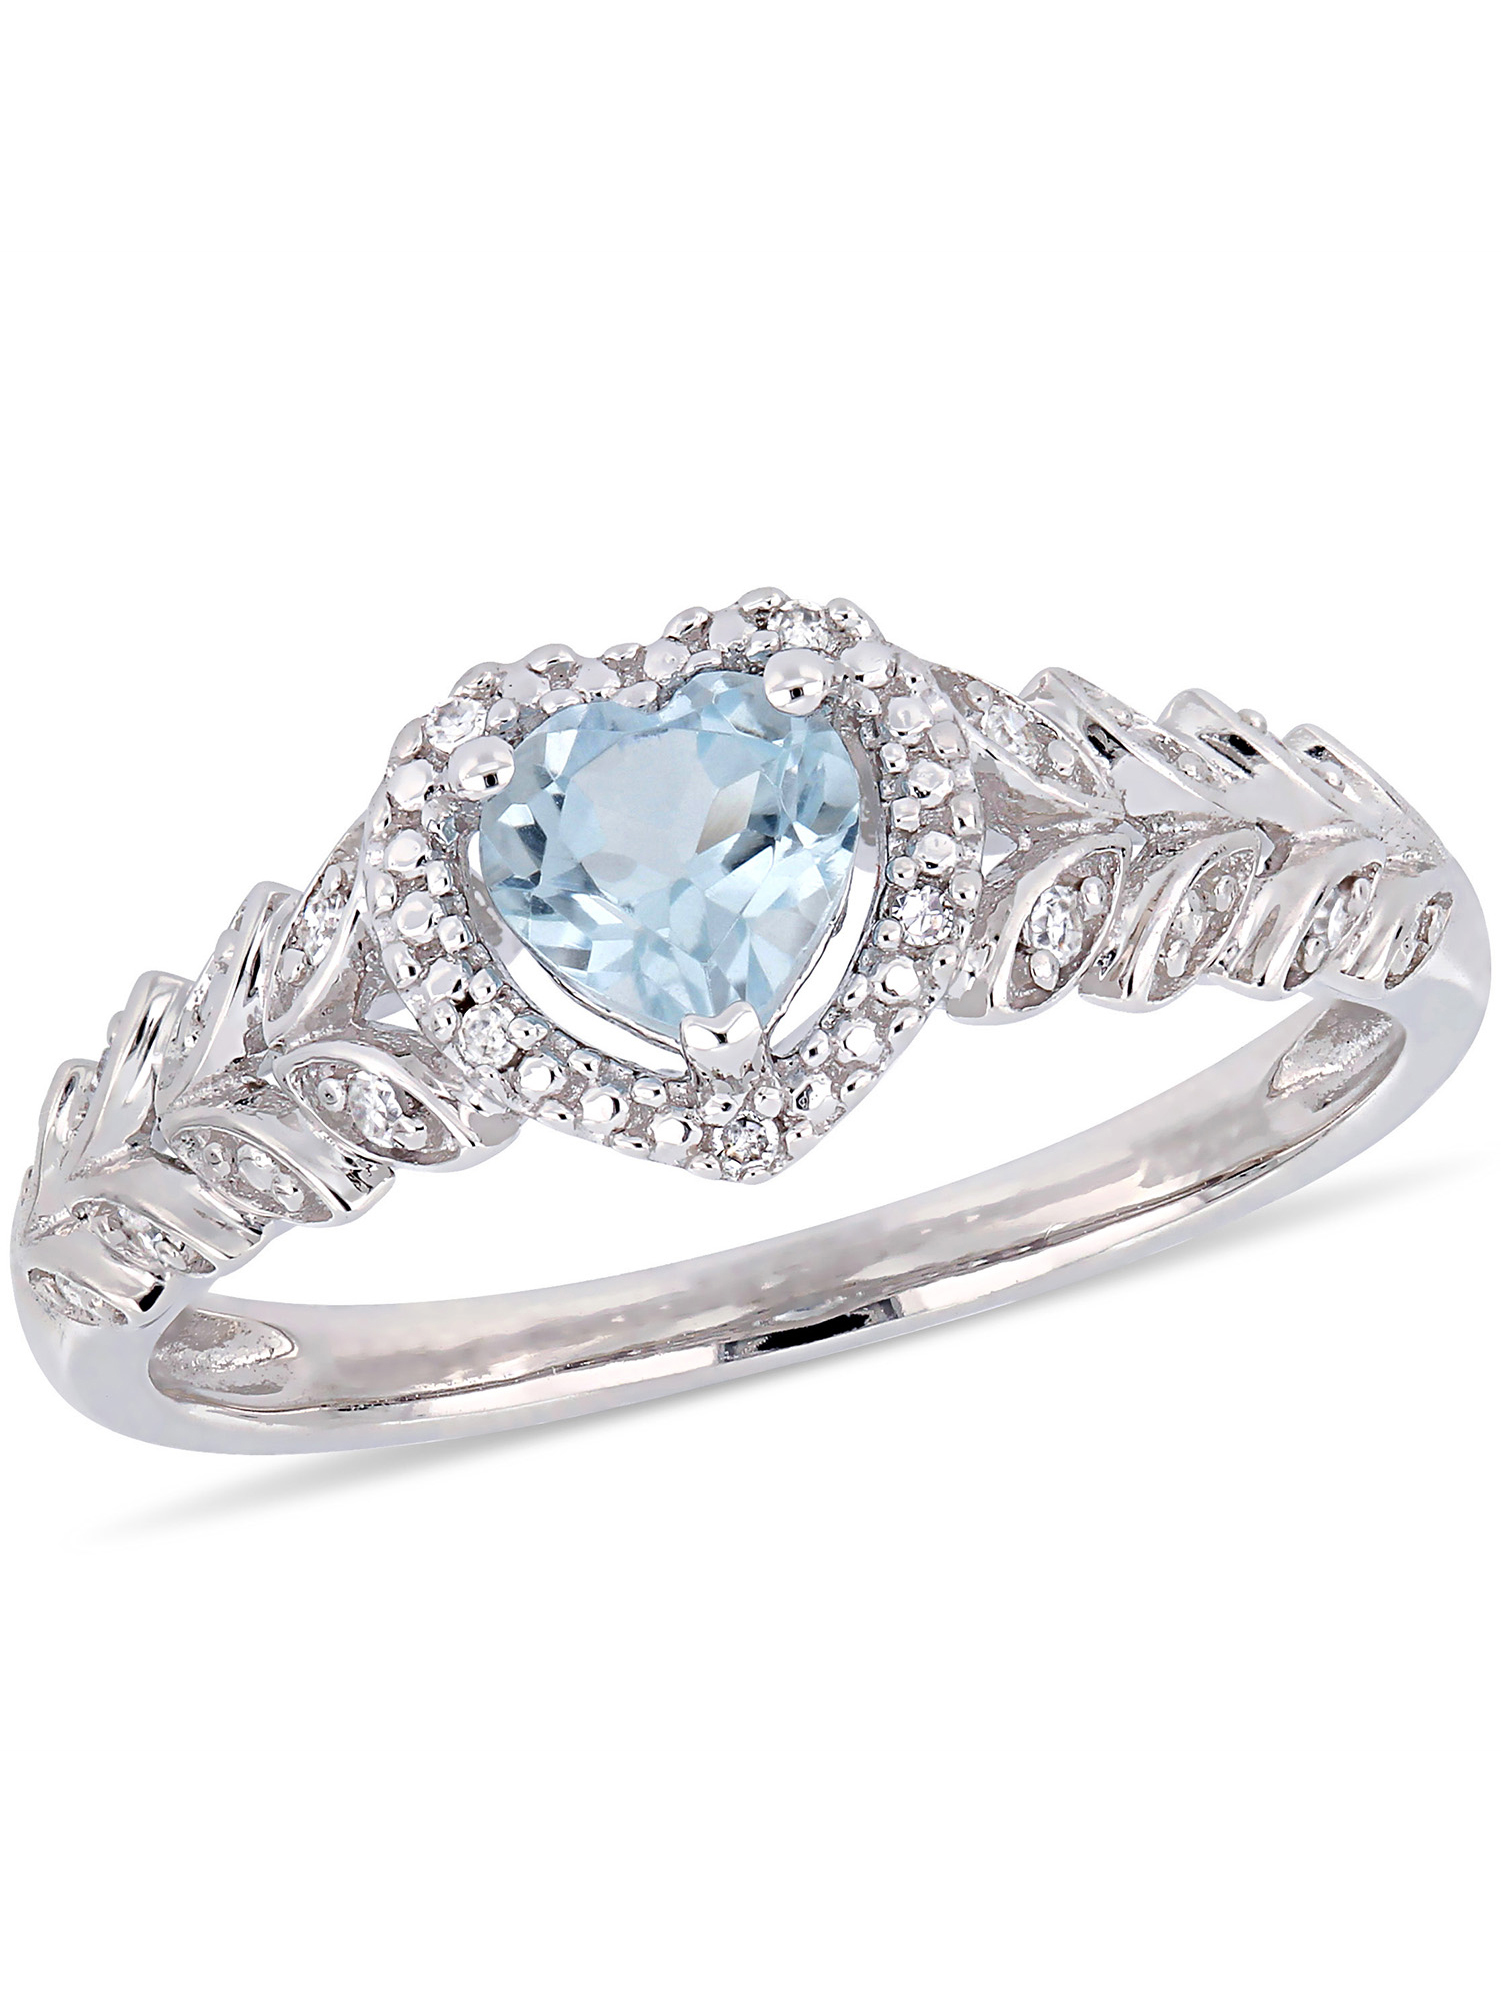 Tangelo 3 5 Carat T.G.W. Sky Blue Topaz and Diamond-Accent 10kt White Gold Heart Halo Ring by Delmar